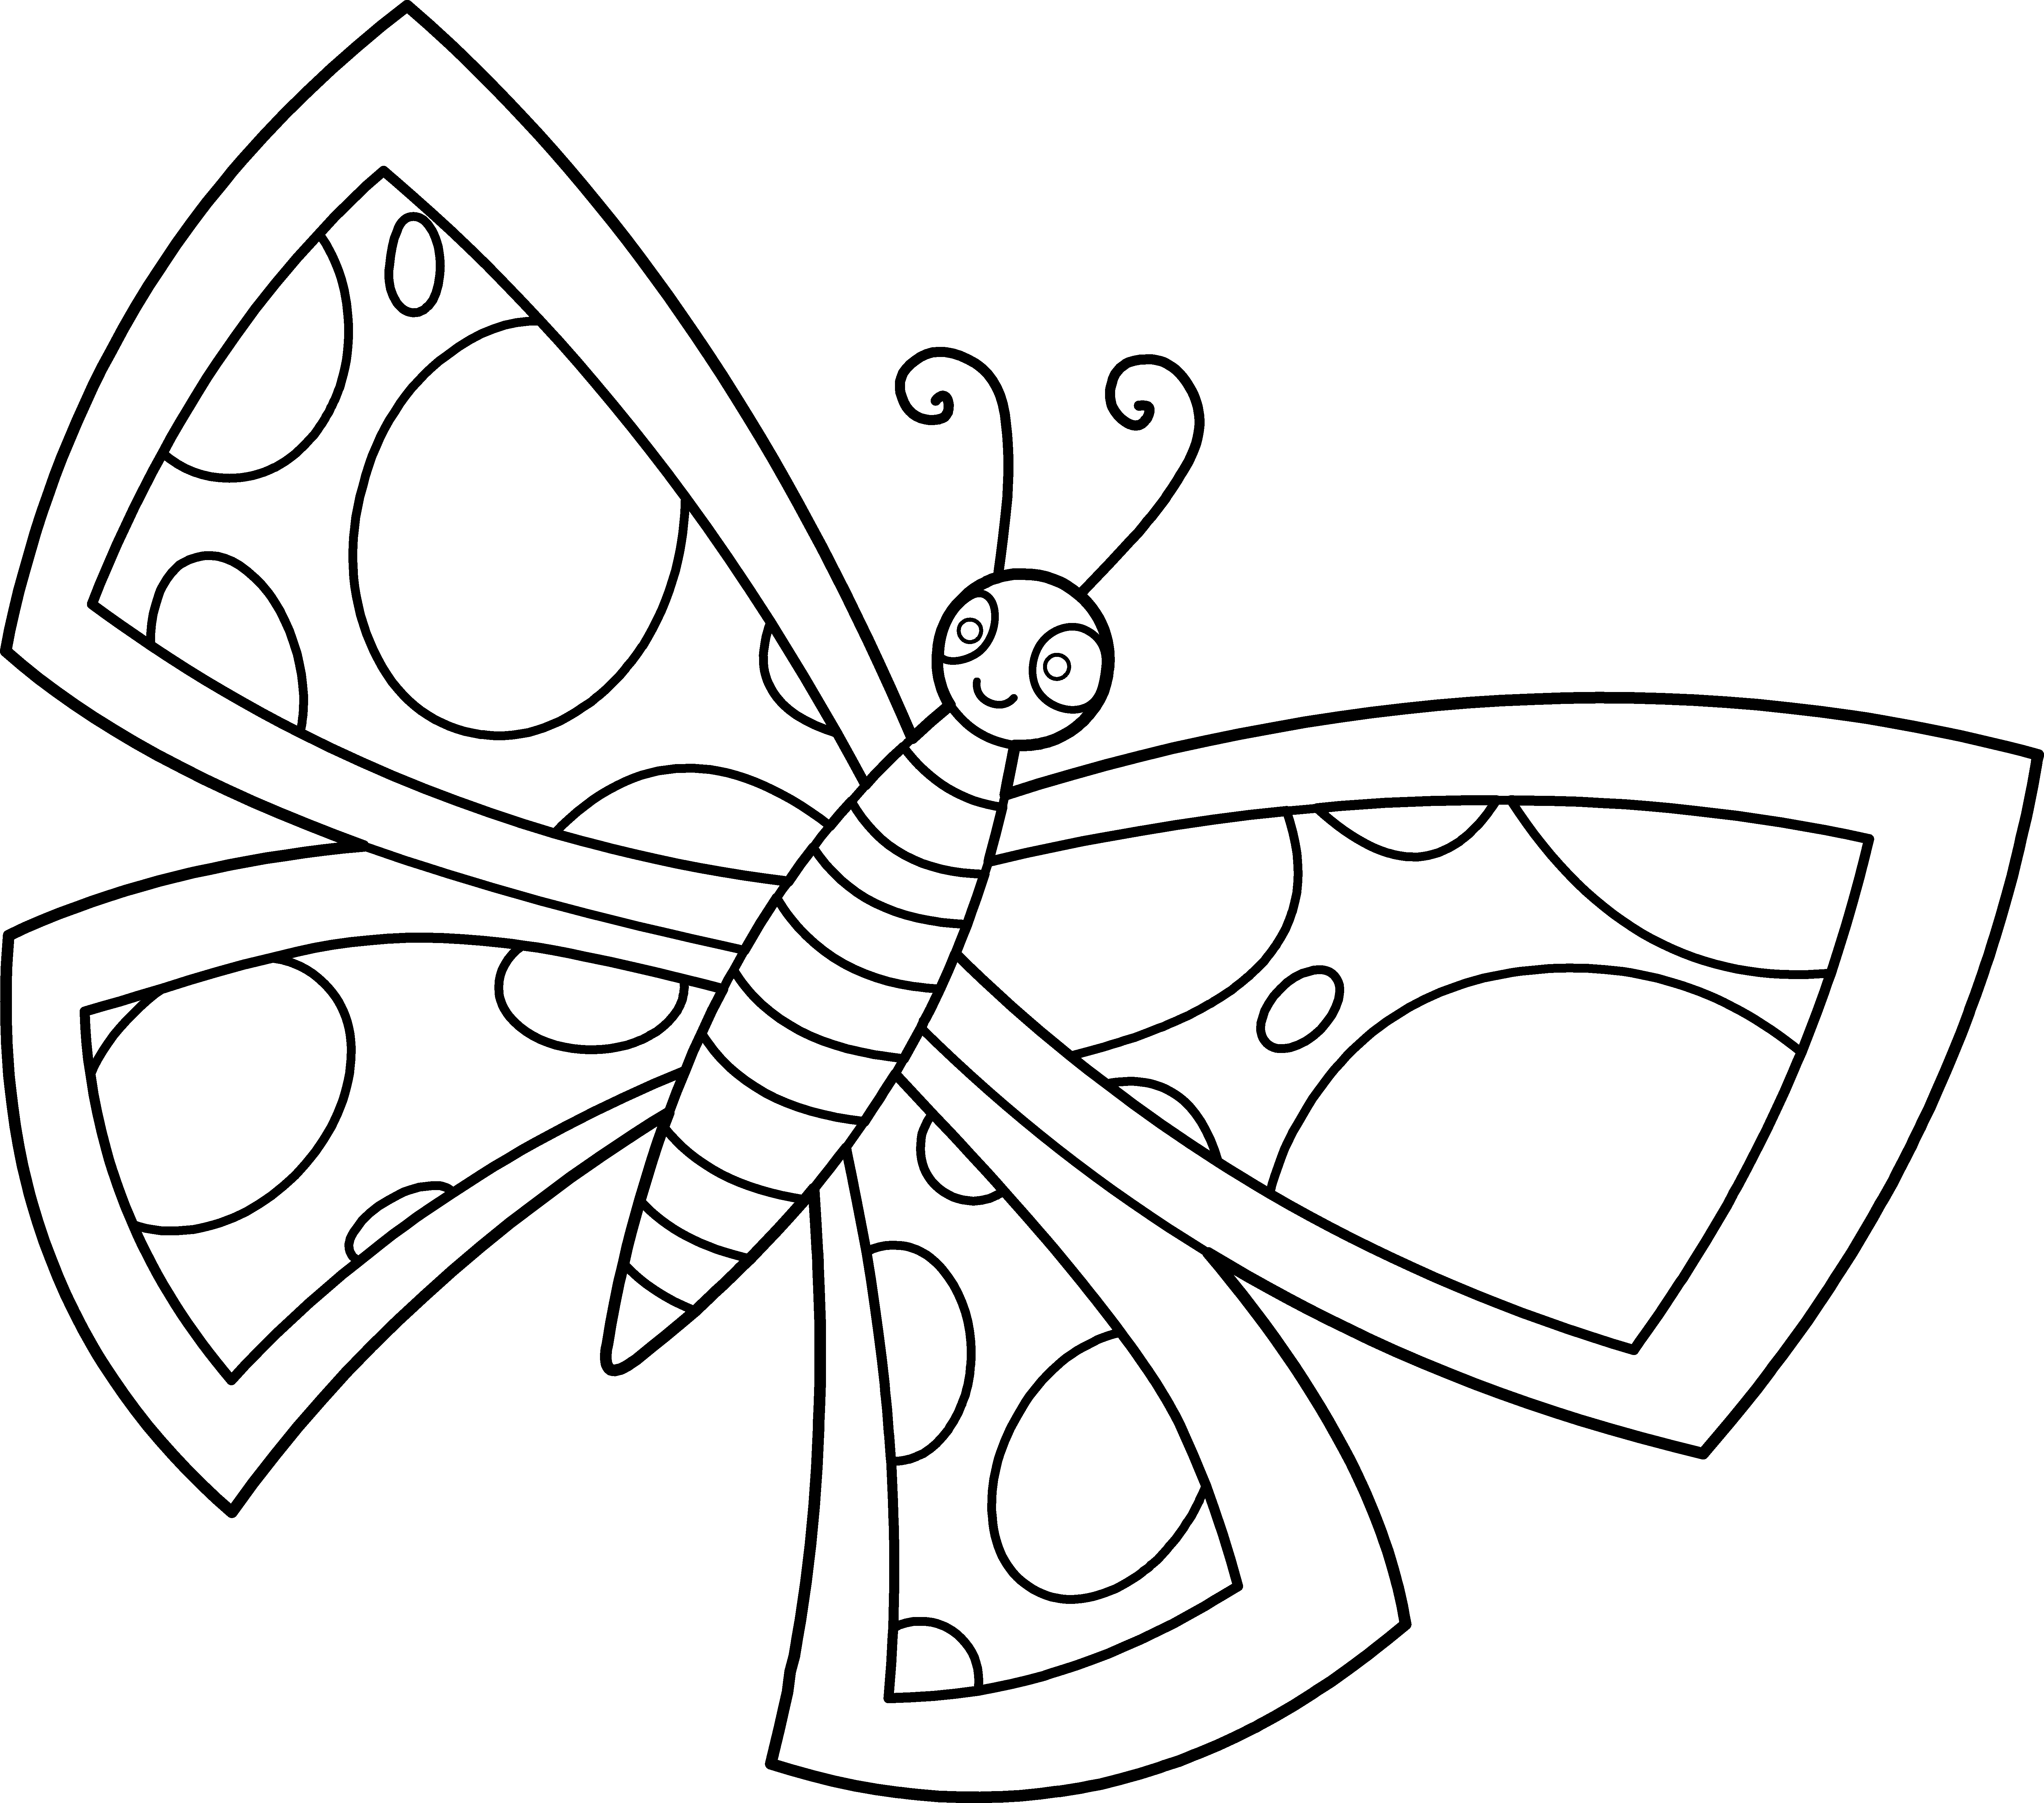 cartoon butterfly pictures to color simple butterfly coloring pages printables butterfly pictures cartoon color to butterfly